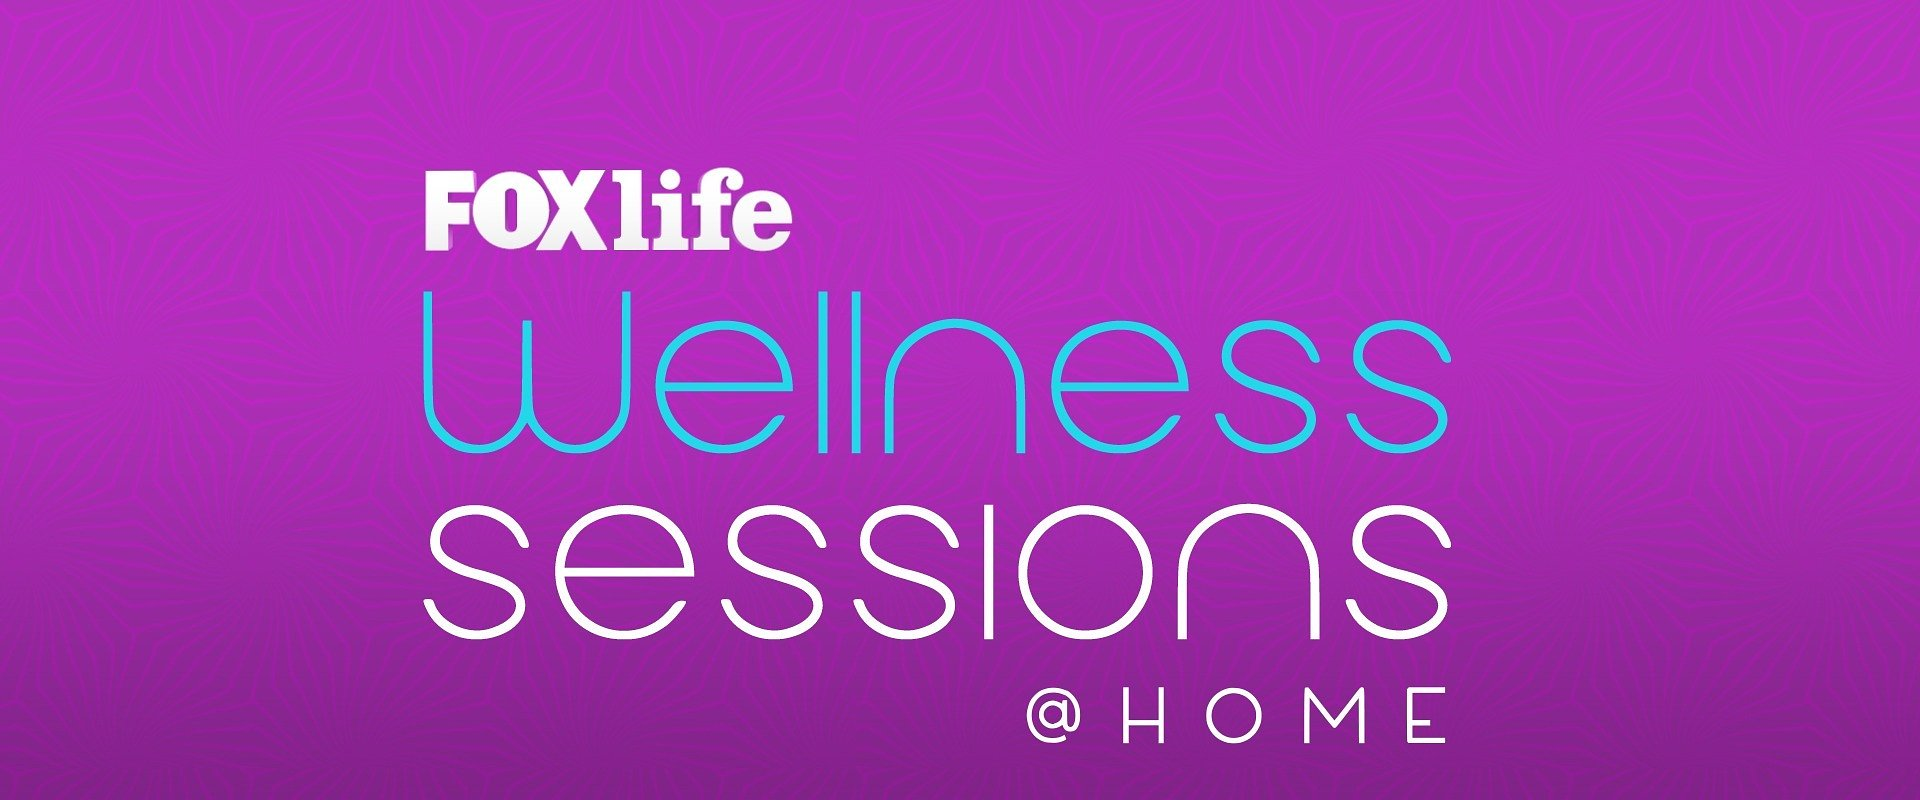 O FOX LIFE WELLNESS SESSION ESTÁ DE VOLTA, MAS DESTA VEZ VAI SER @HOME